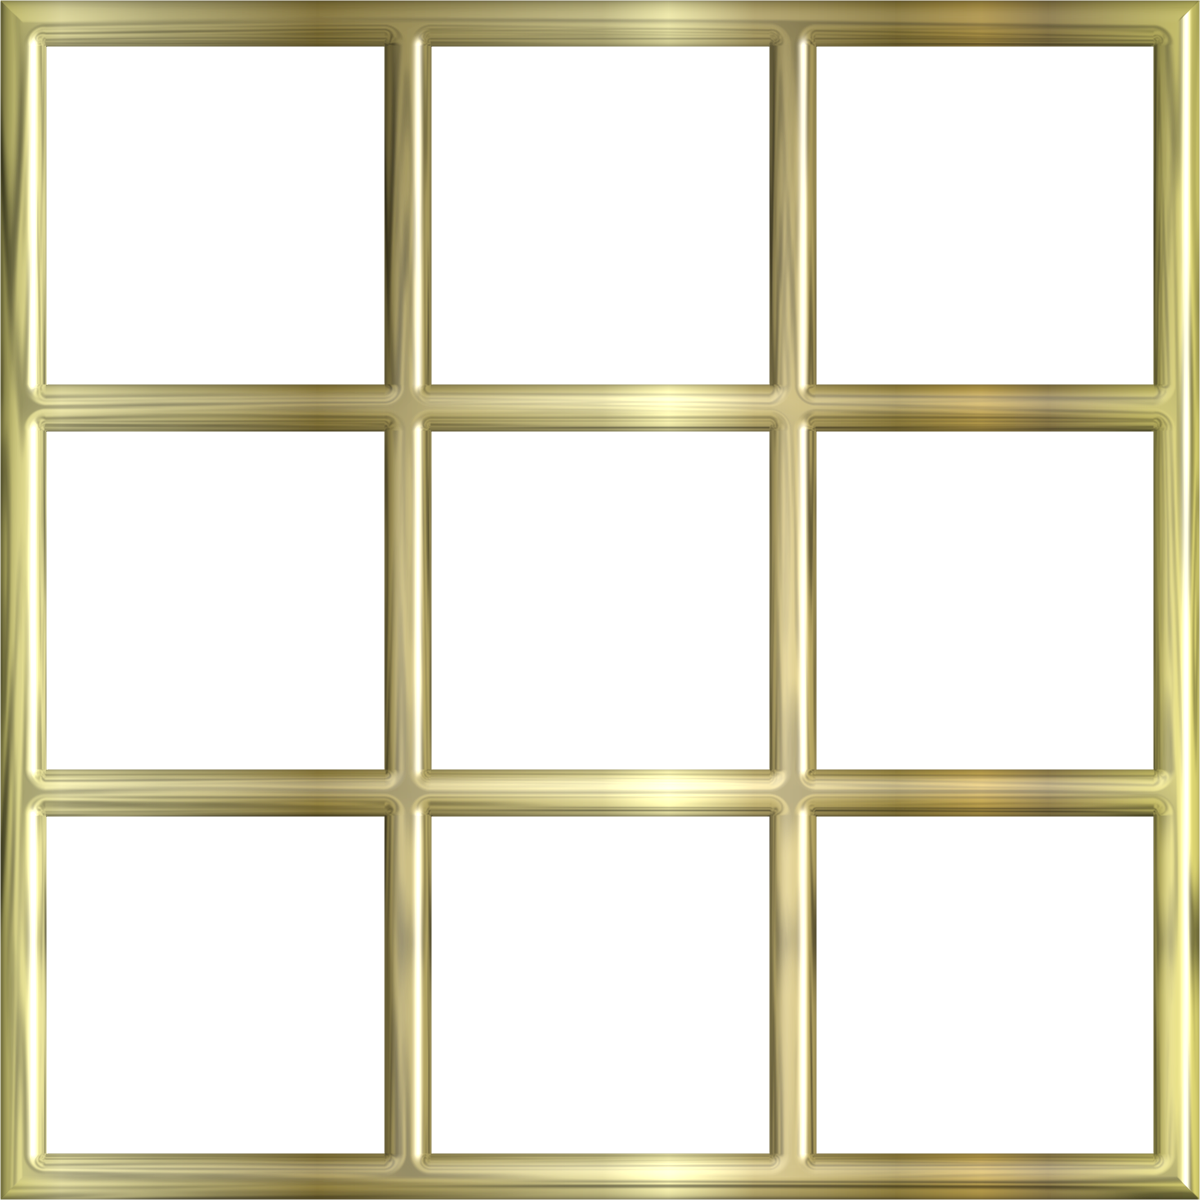 Window clipart rectangle Border Frame Image Free at